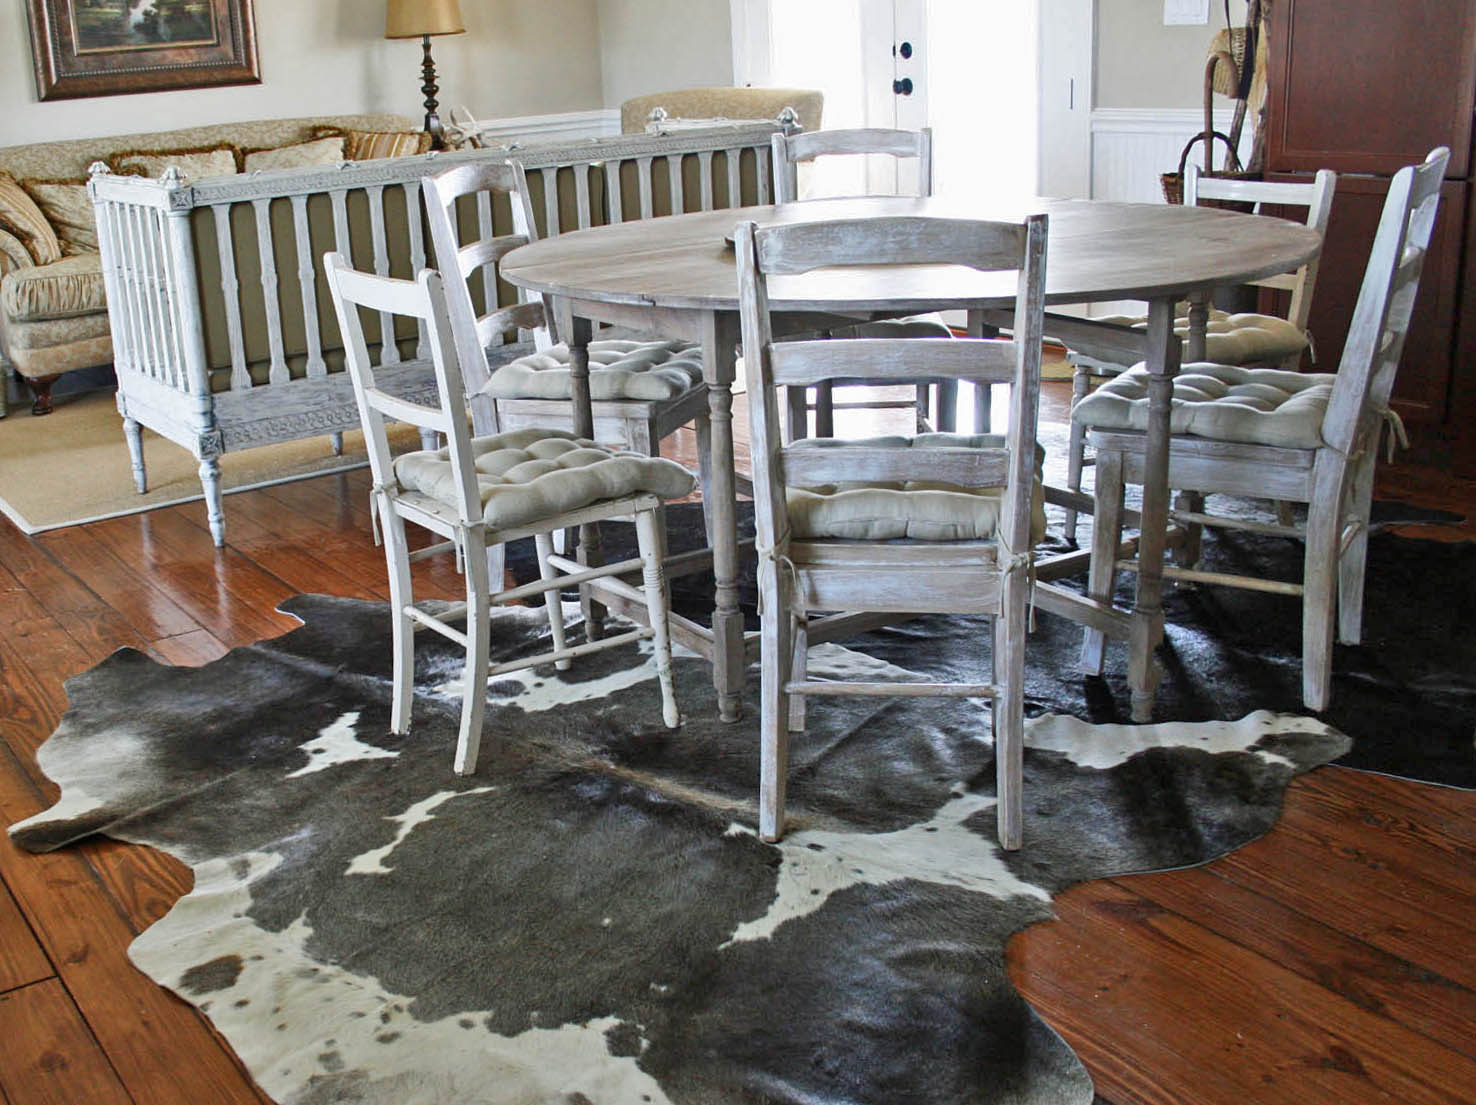 skinny on decorating with cowhide rugs rug for kitchen table On a sad note it did not occur to me beforehand that the black rug would make every hair shed by our collie as obvious as dandruff on a dark suit